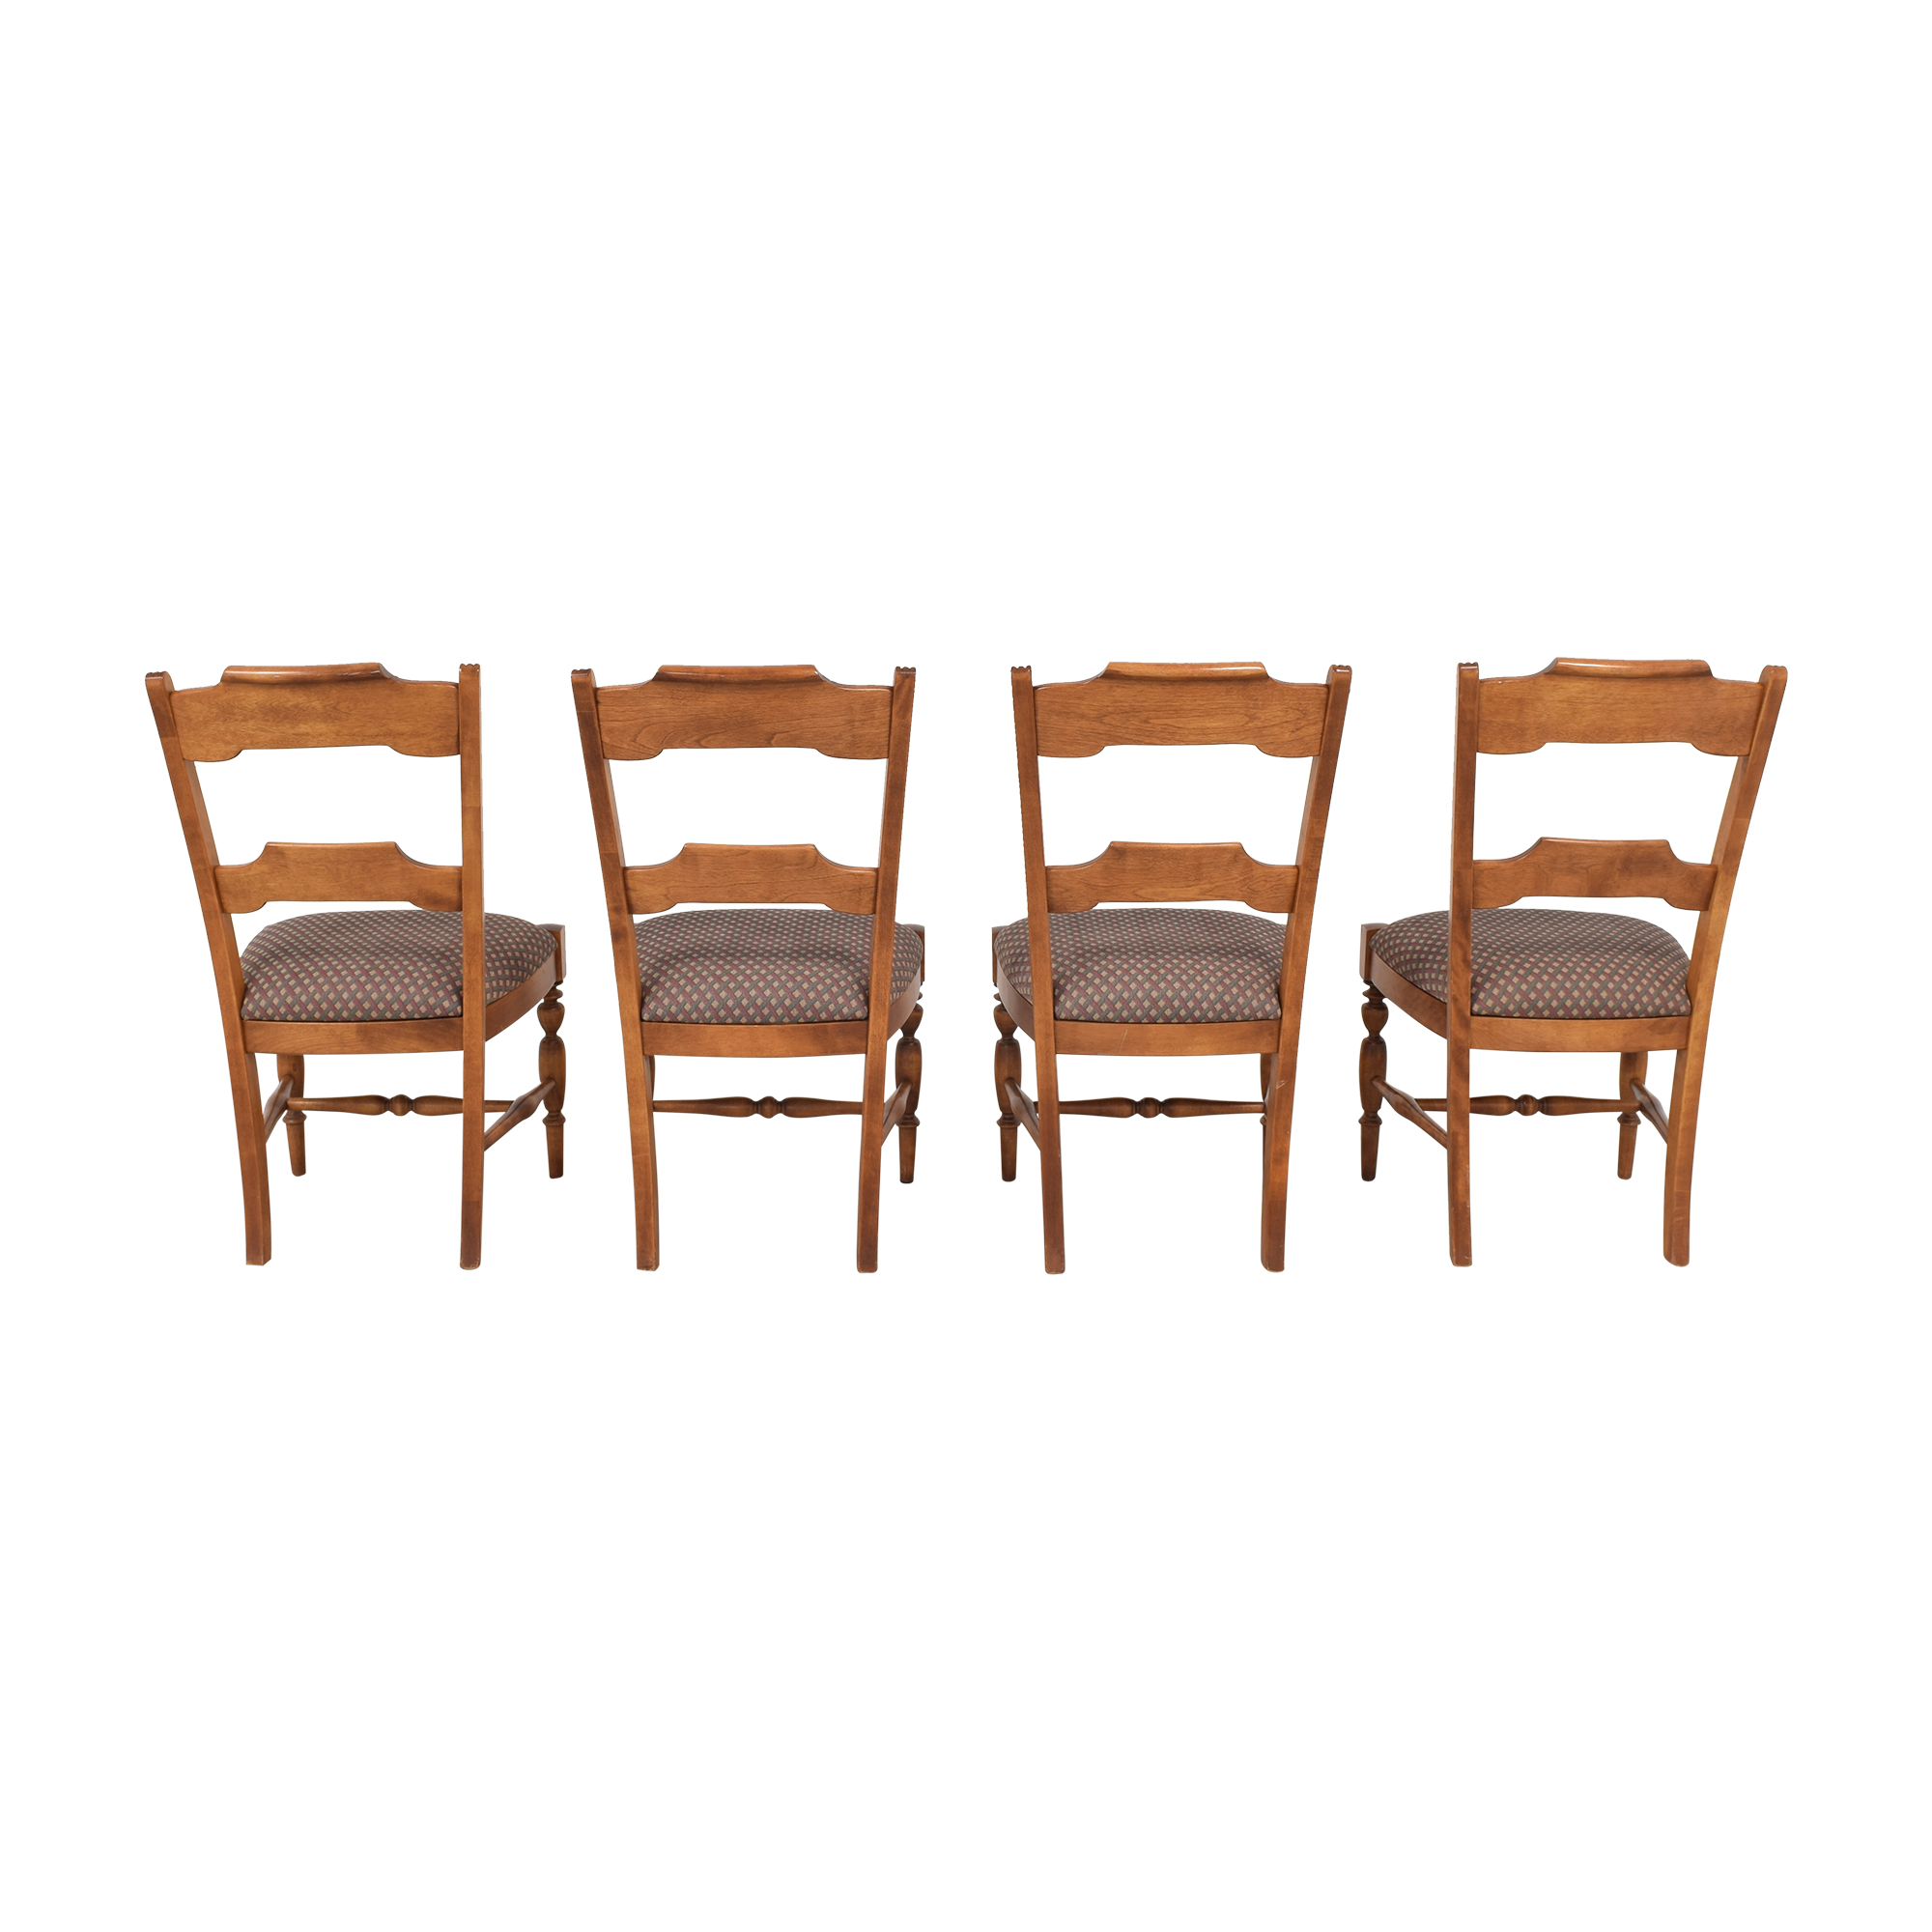 Nichols & Stone Nichols & Stone Upholstered Dining Chairs brown, red & green